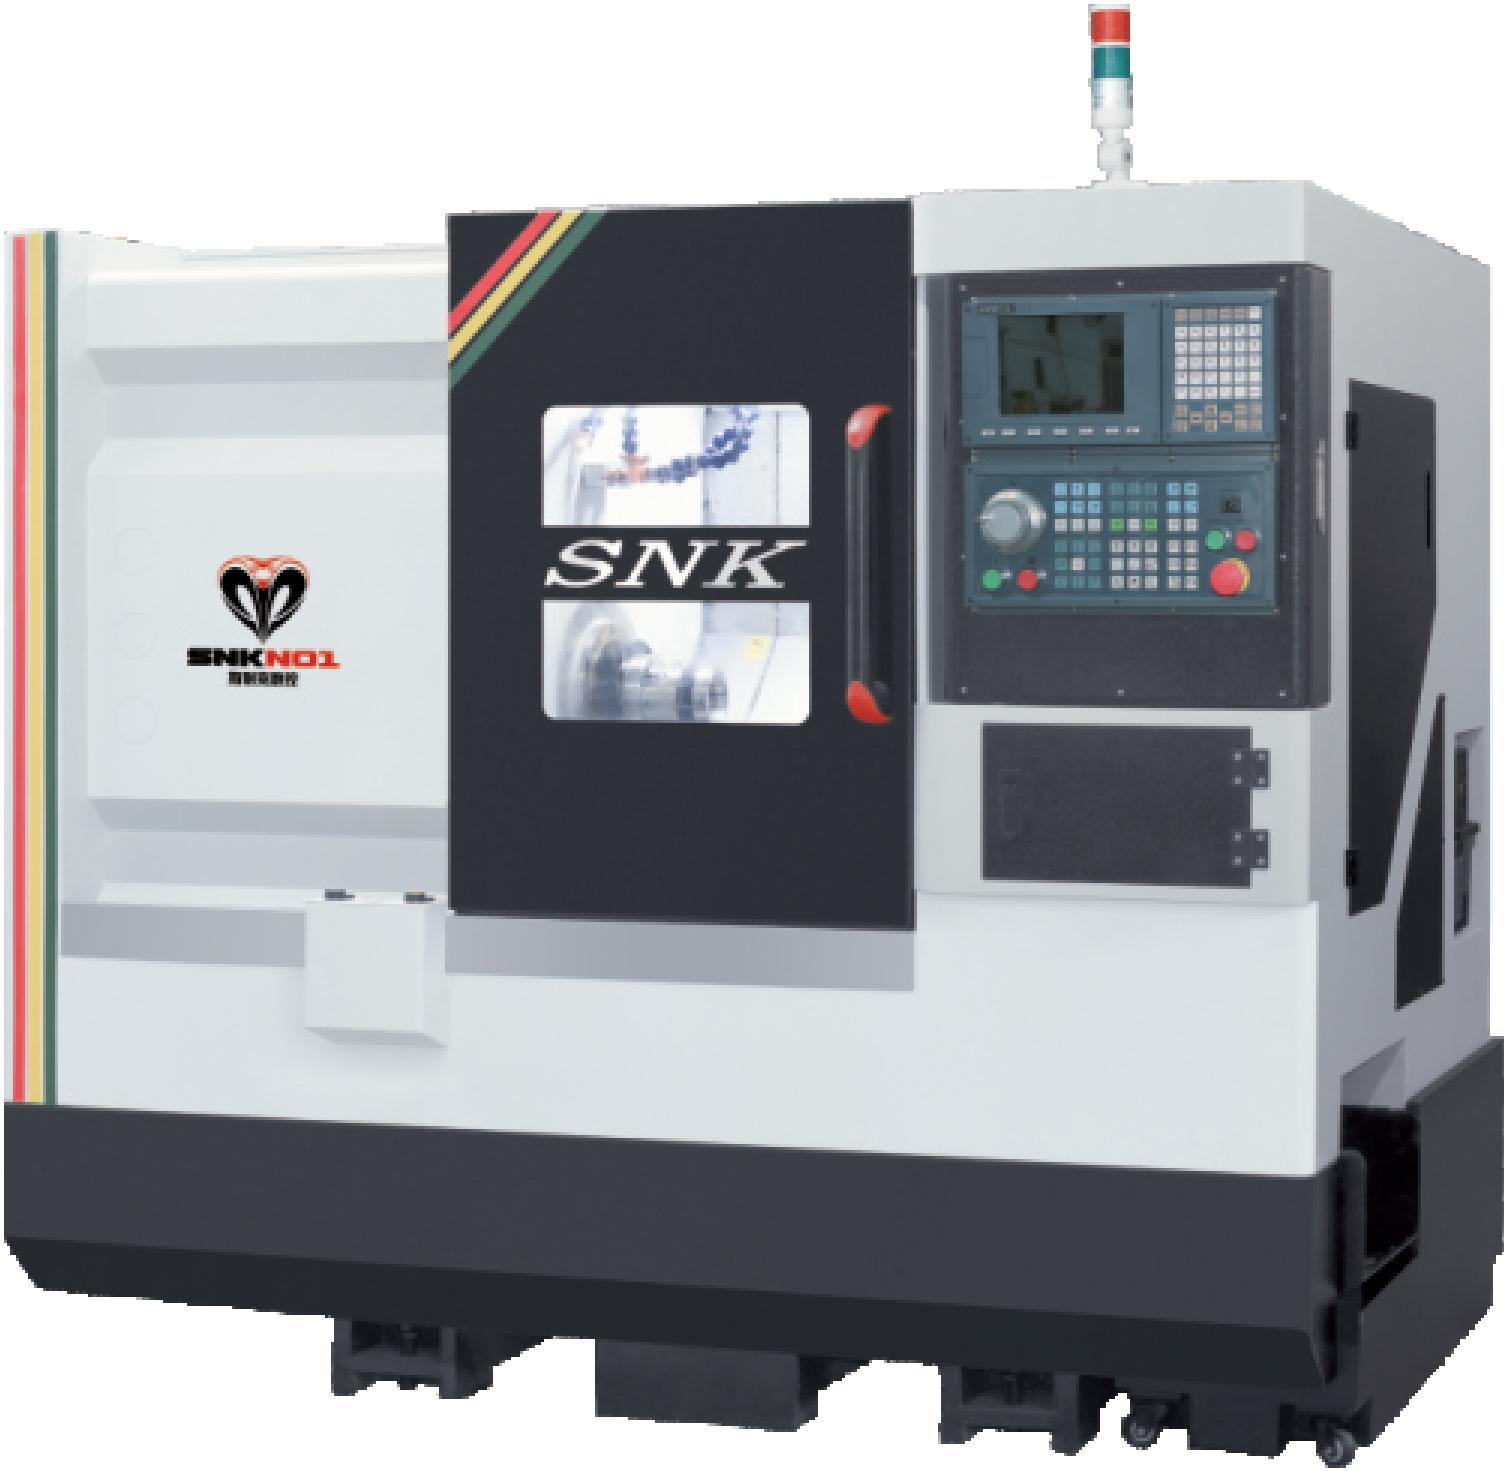 GANG TYPE CNC LATHE MACHINE SNK-46